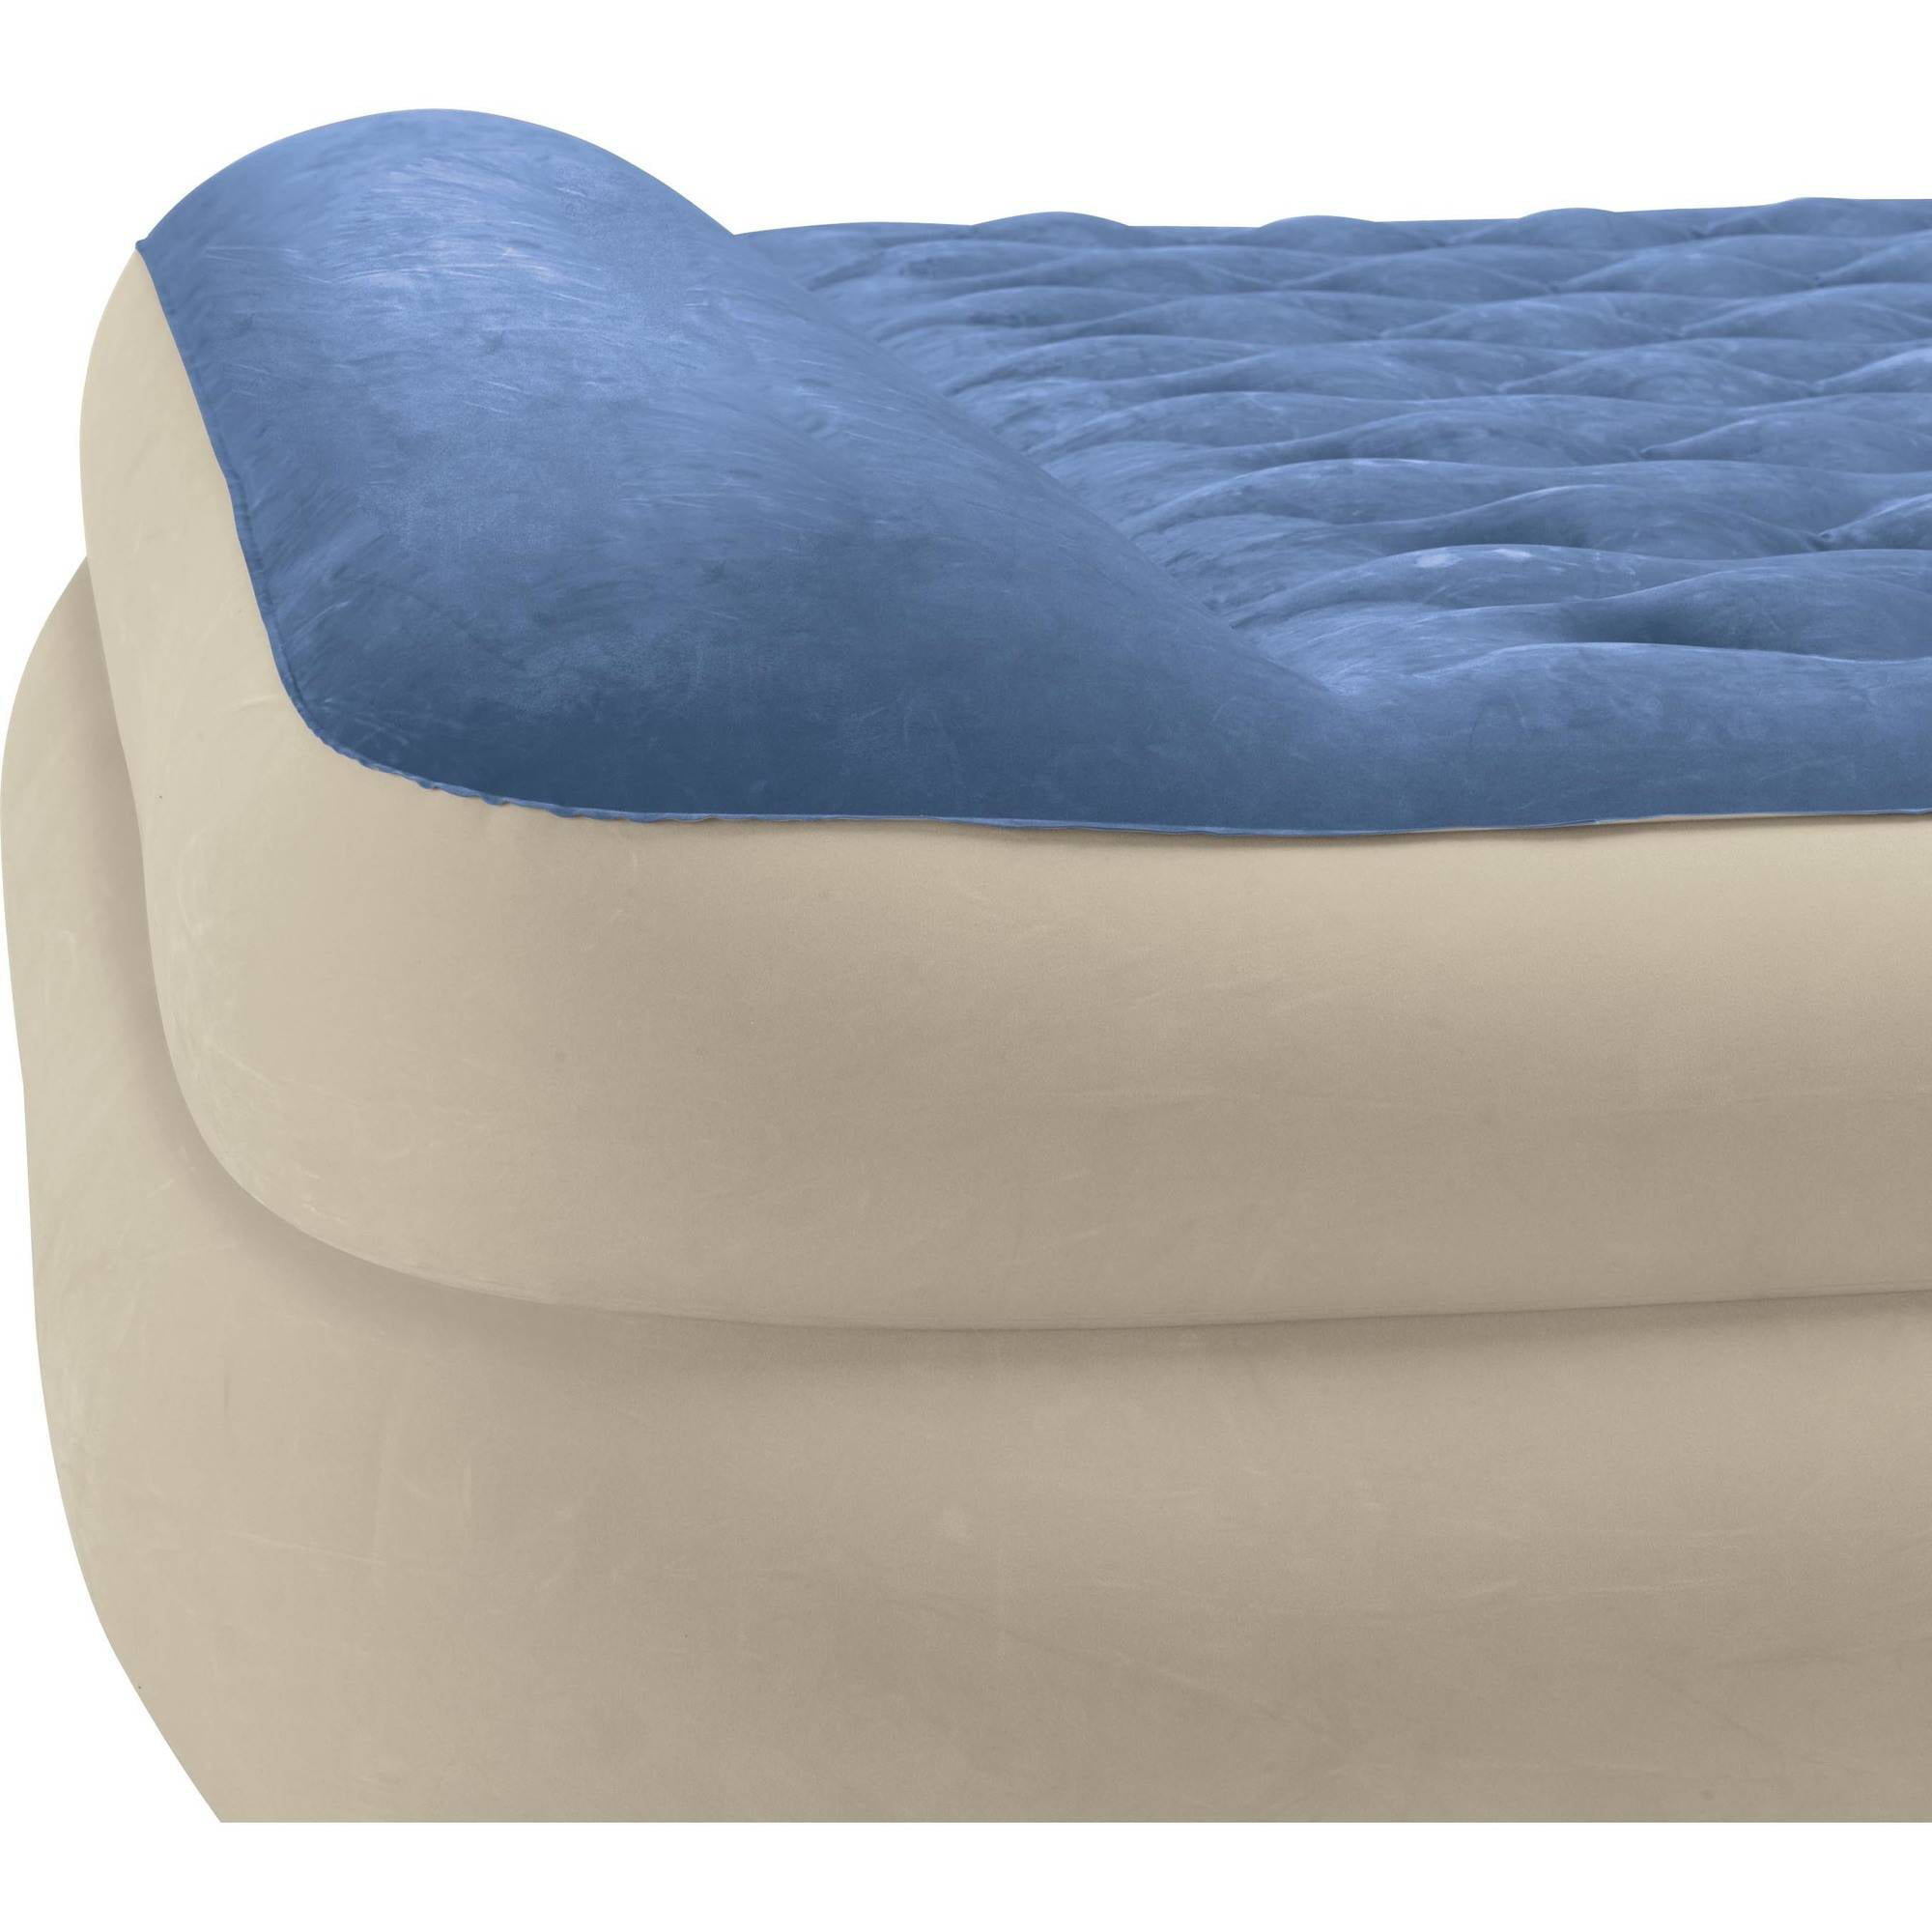 Bed chair pillow walmart - Bed Chair Pillow Walmart 8